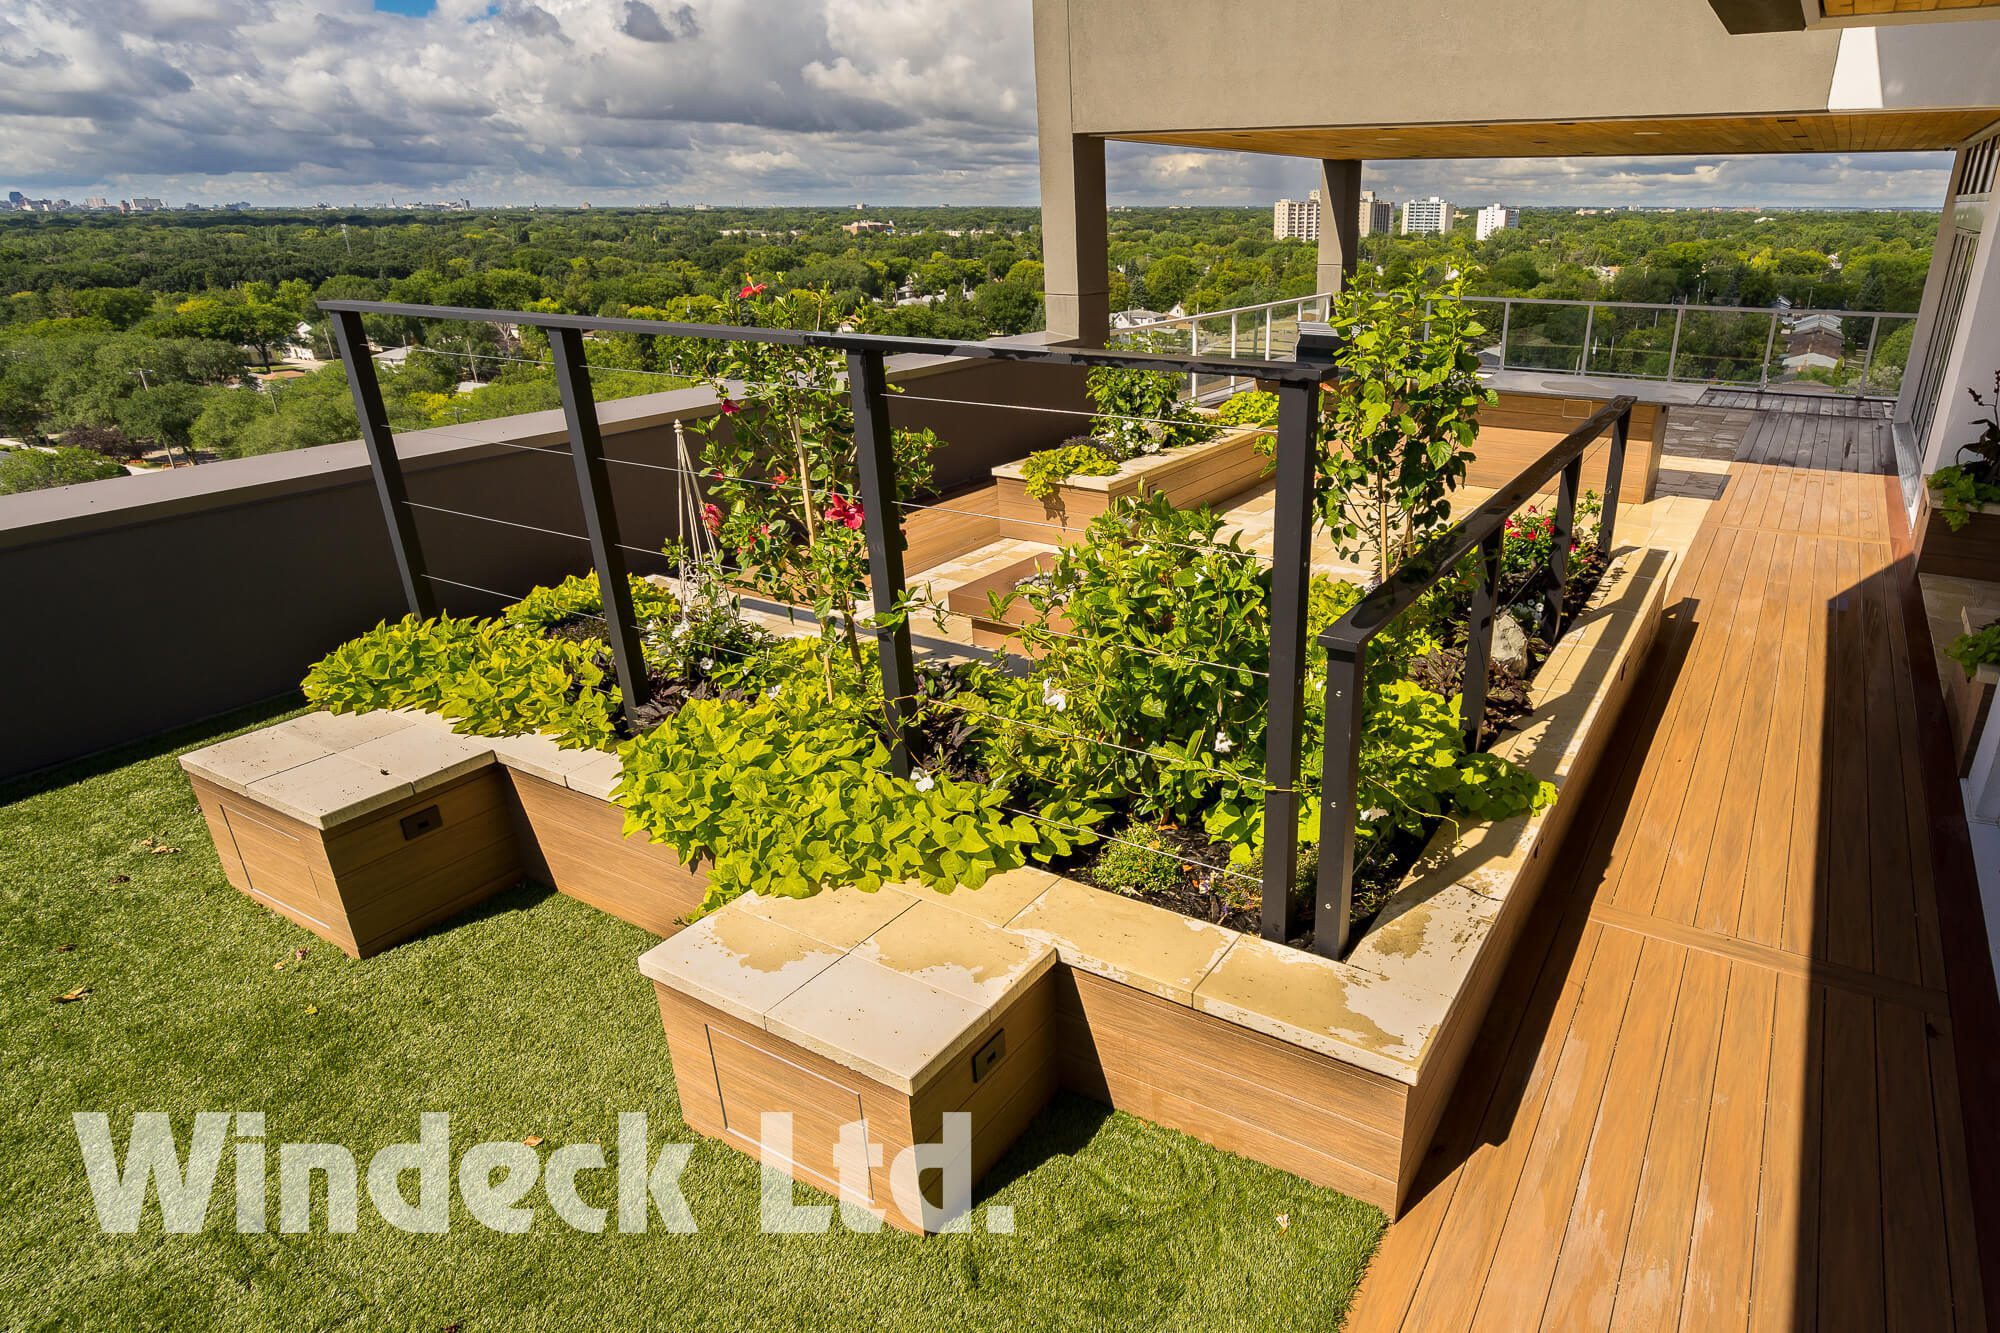 Maintenance Free Planter Boxes - Windeck Ltd. - Deck Builder Winnipeg, Manitoba